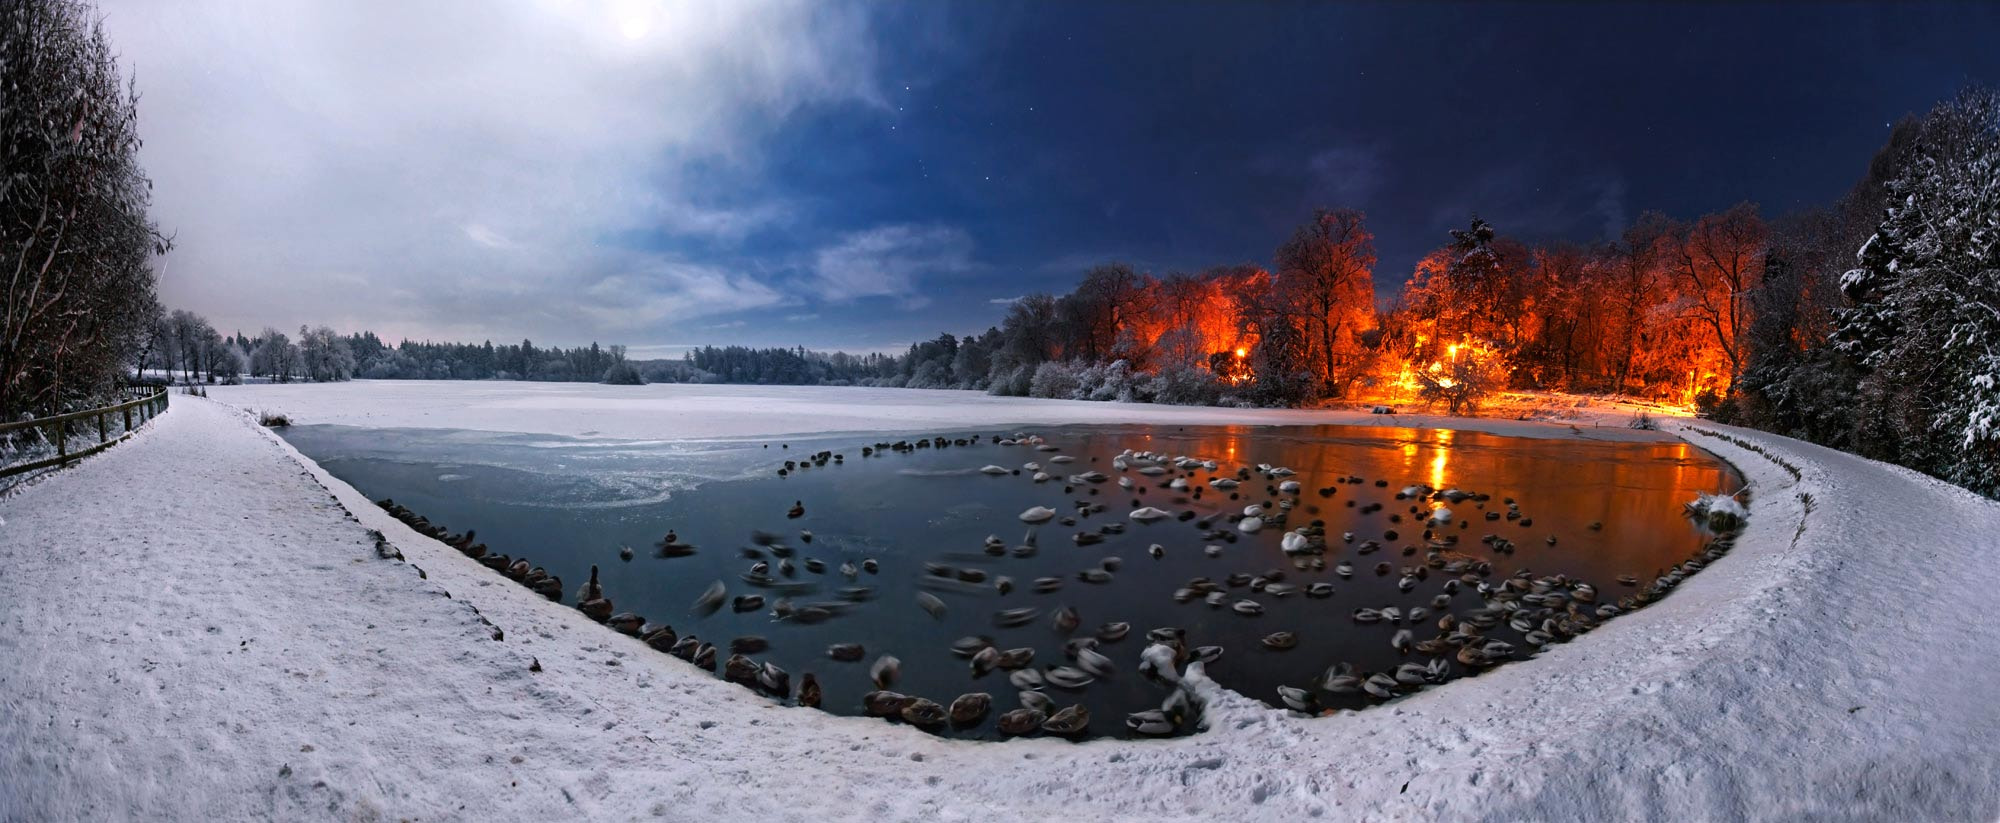 Photograph Midnight Lake by Stephen Emerson on 500px